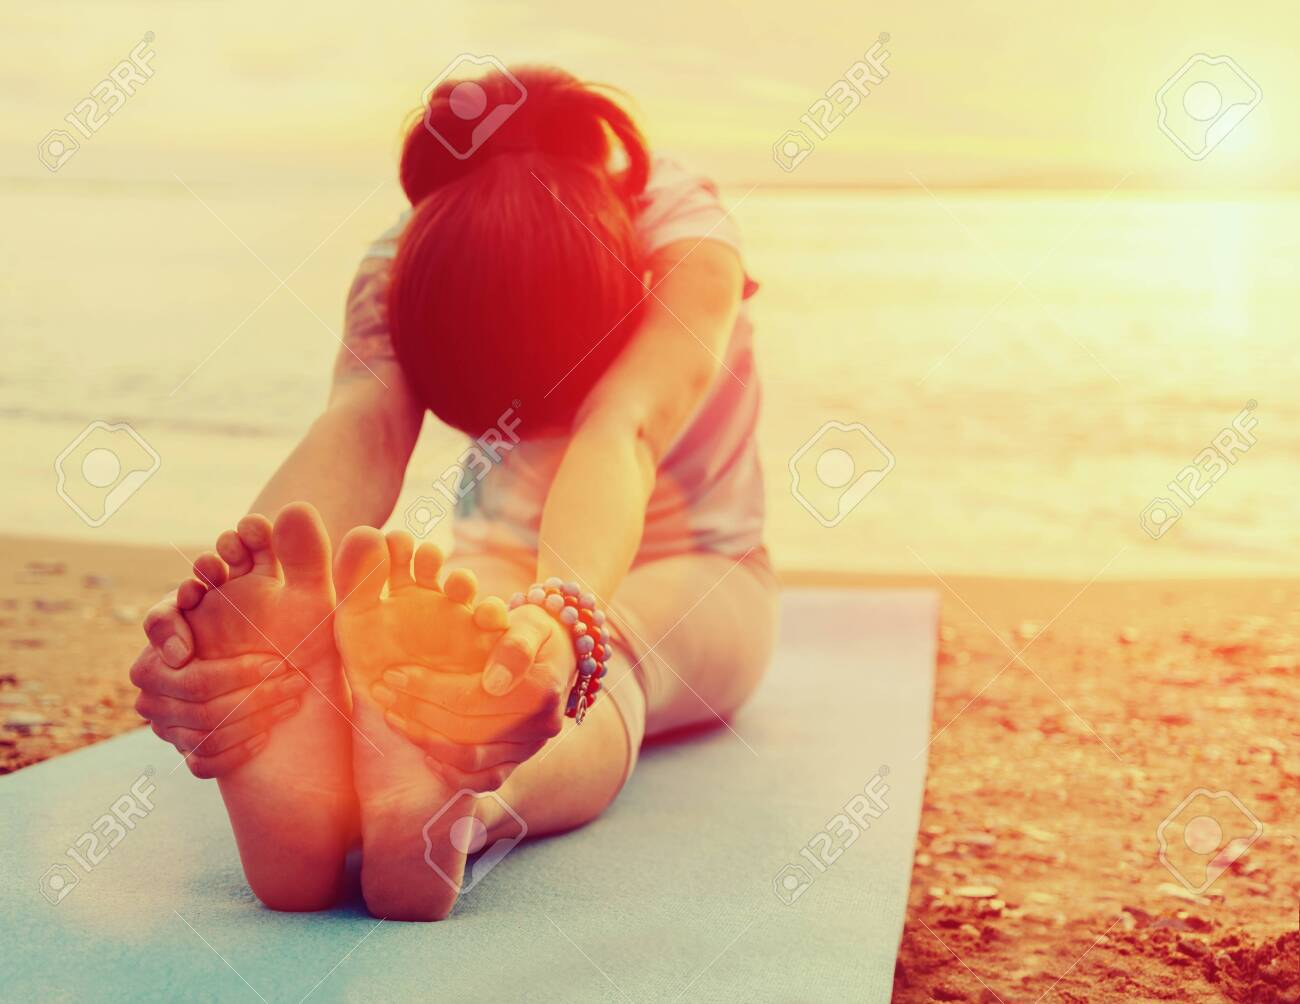 Young woman doing yoga exercise on summer beach at sunset. Image with sunlight effect - 128550411